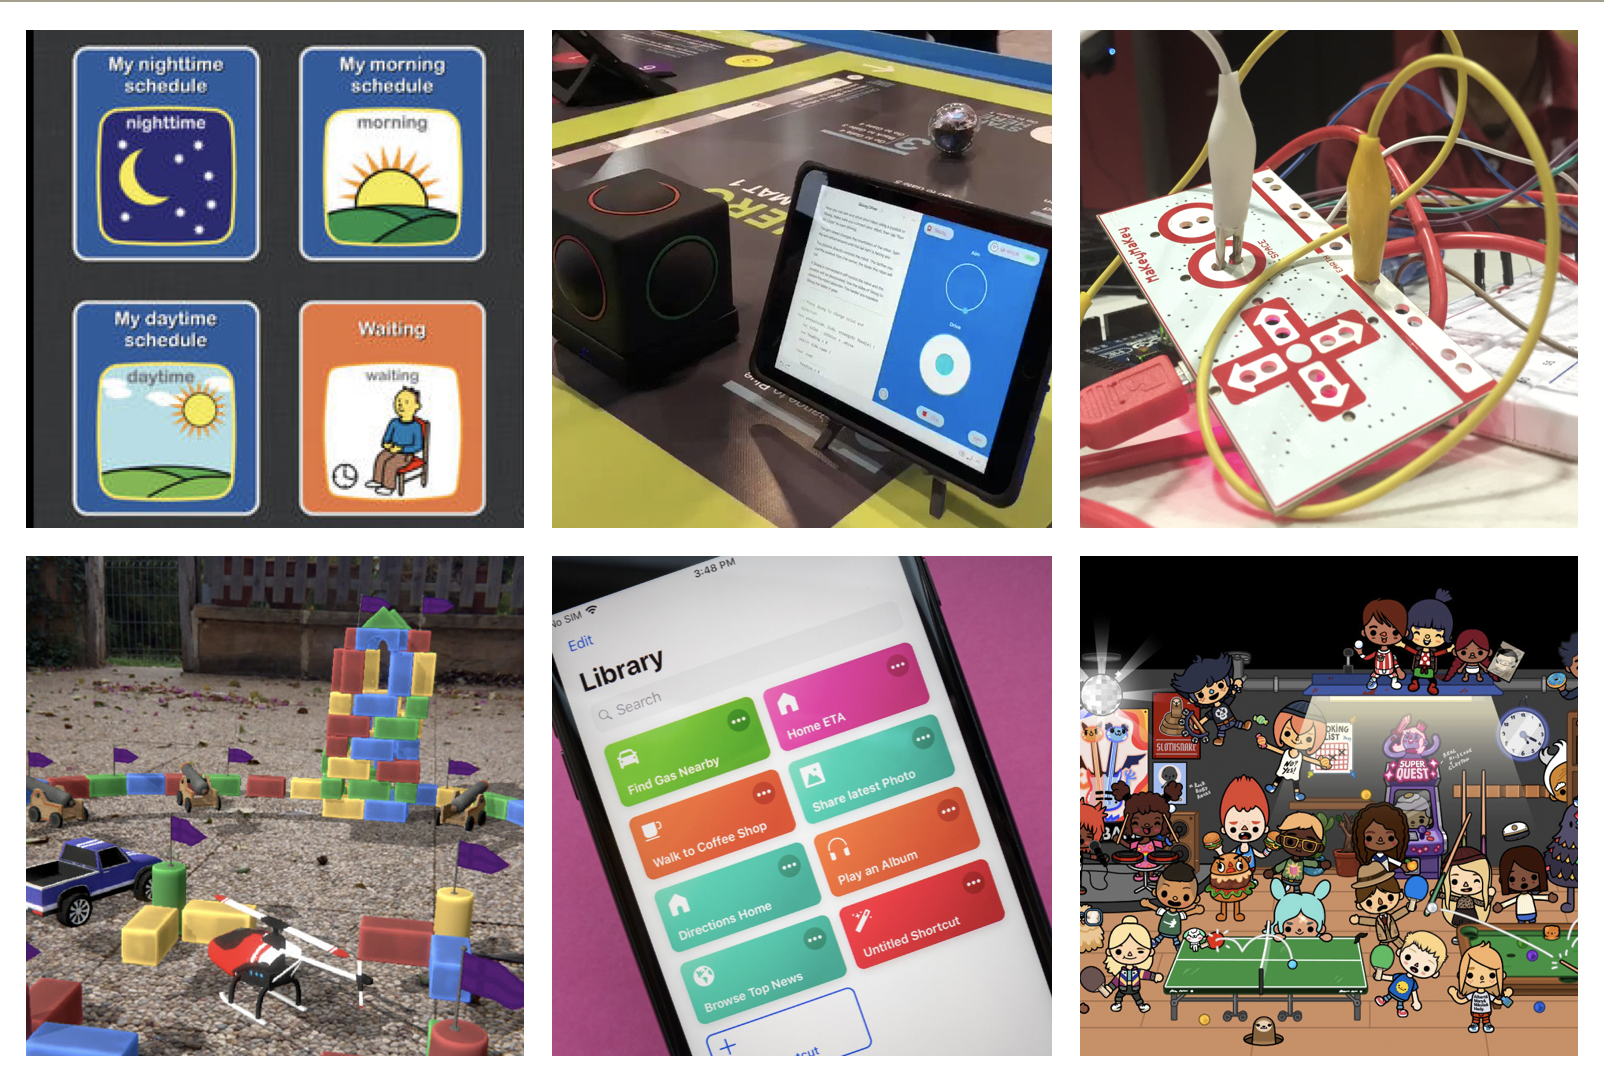 Collage of different technologies: from top left, Choiceworks; Skoog; MaKey MaKey; AR Playgrounds; iOS Shortcuts; Toca Boca.